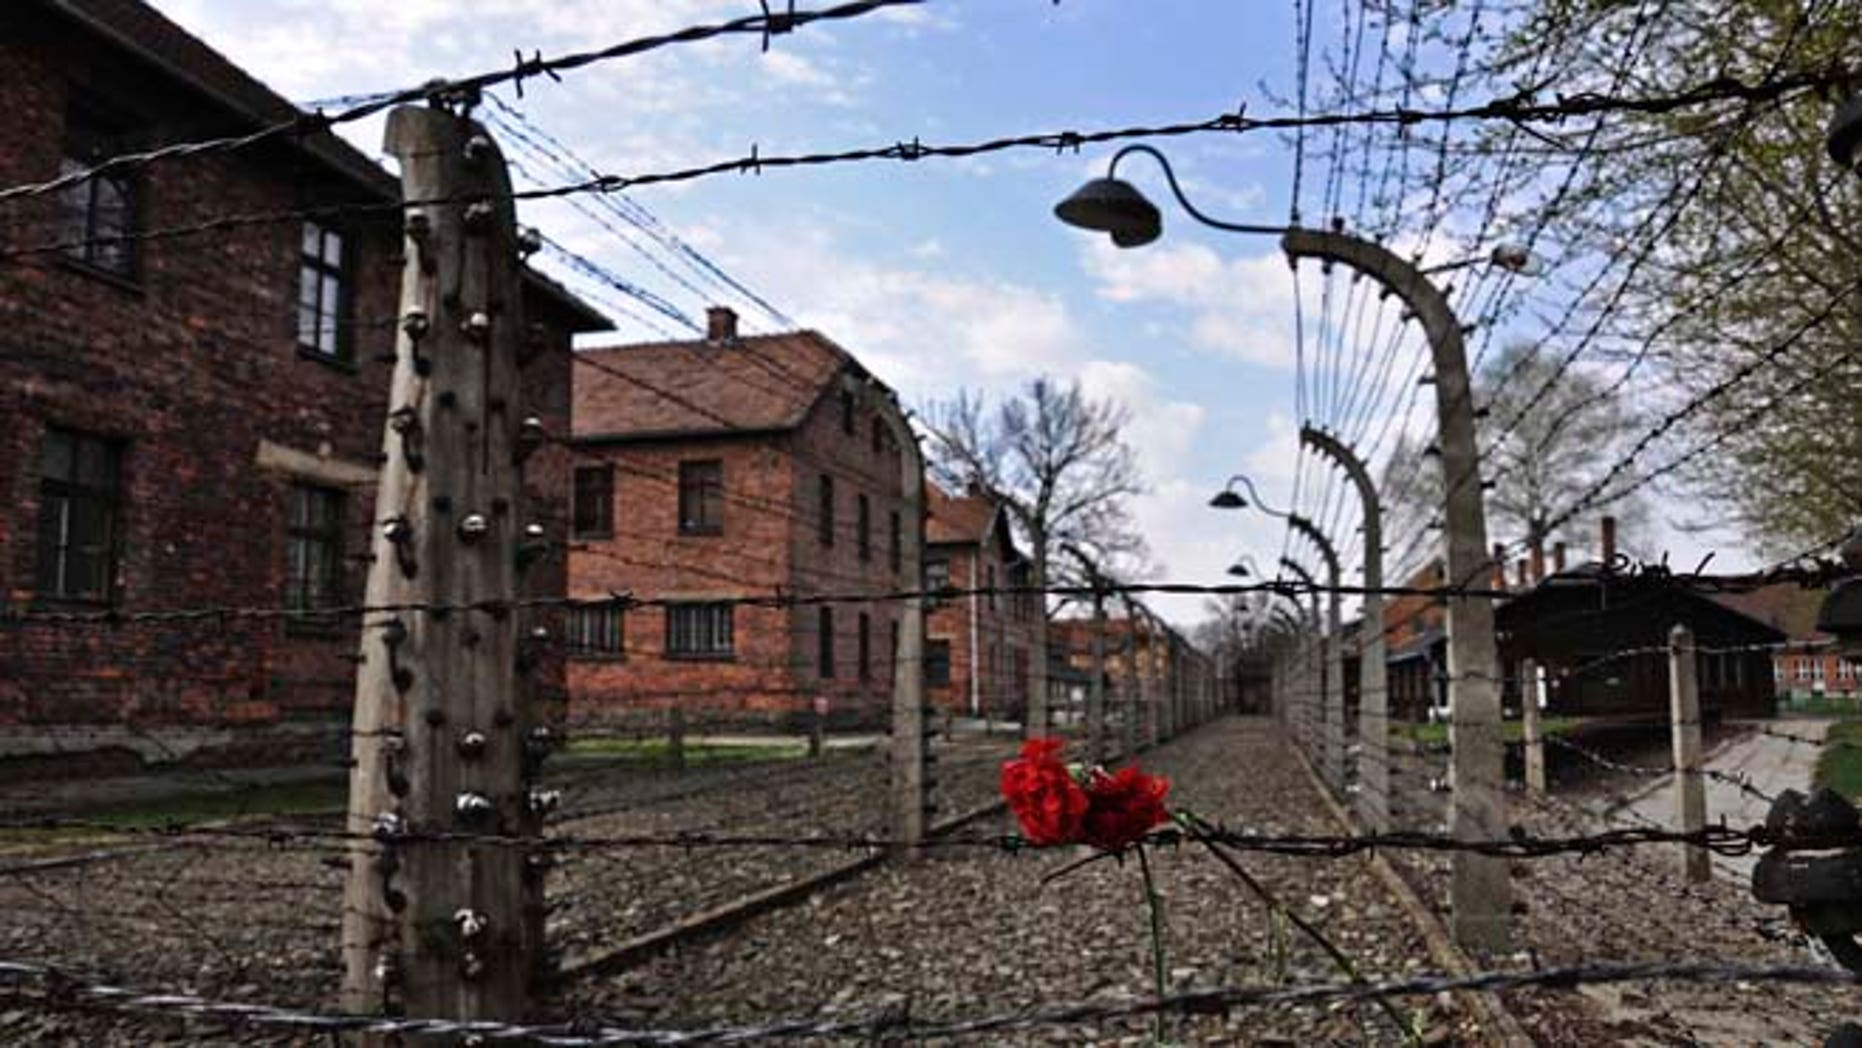 April 16, 2015: Carnations are placed on the barbed wire in the former Nazi death camp of Auschwitz.